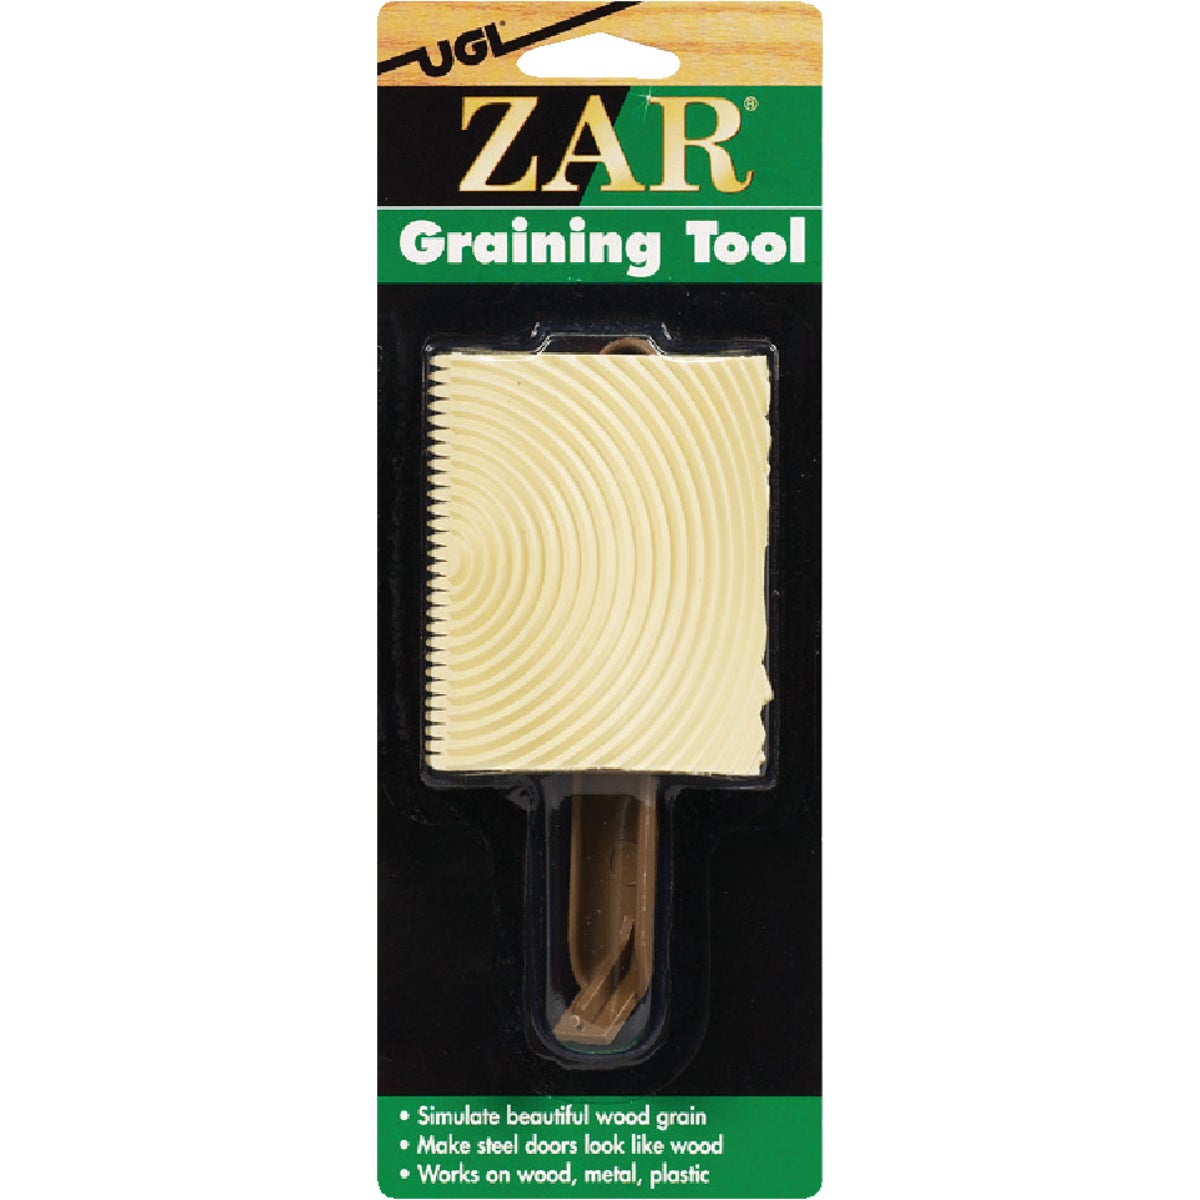 WOOD GRAINING TOOL - 14337 by United Gilsonite Lab